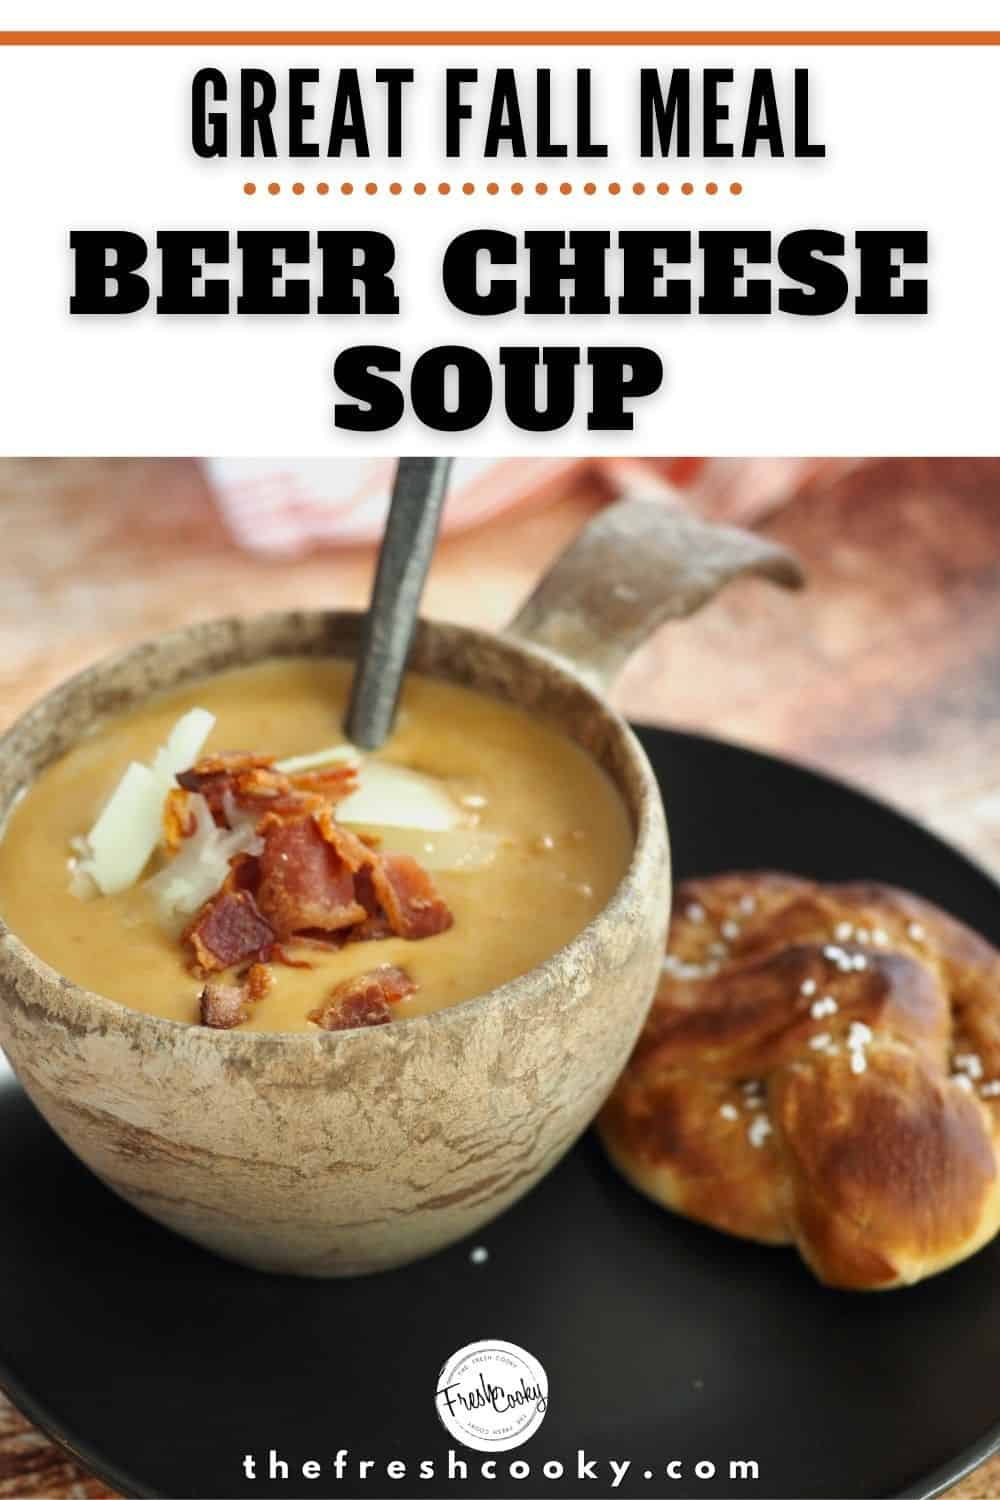 The BEST Beer Cheese Soup Ever! At least in our home here at The Fresh Cooky. We love how easy this recipe is to make, using healthy, all-natural ingredients like white sharp cheddar cheese, bacon, veggies, chicken or veggie stock. Easily make this German Cheese Soup gluten free and vegetarian by swapping ingredients out. #thefreshcooky #beercheesesoup #bestsouprecipes via @thefreshcooky